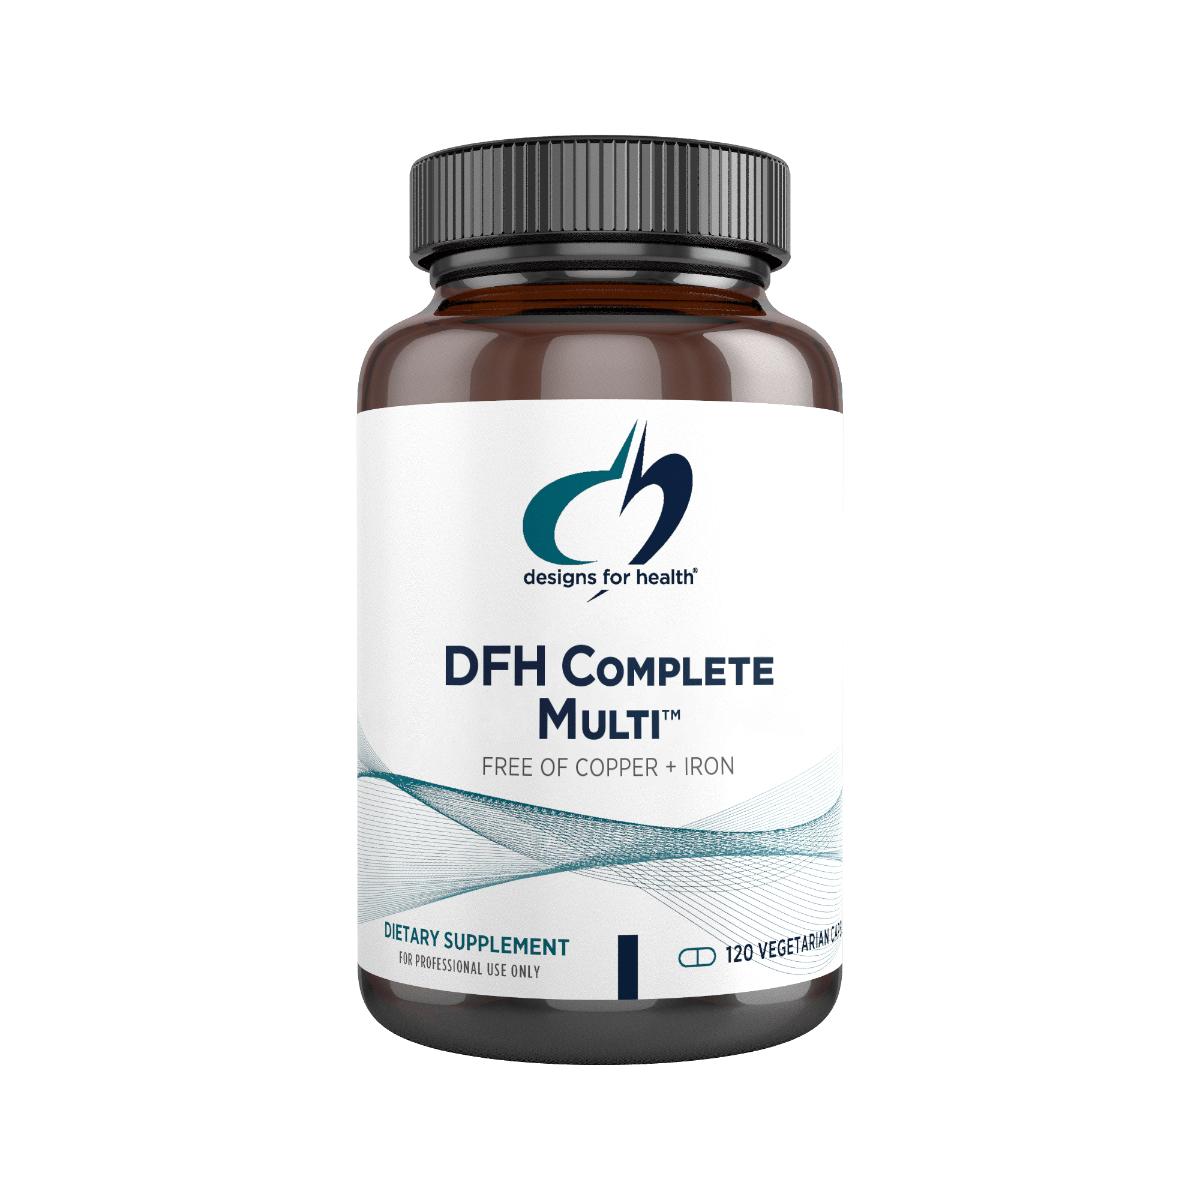 DFH Complete Multi (Free of Copper and Iron) 120 Designs for Health